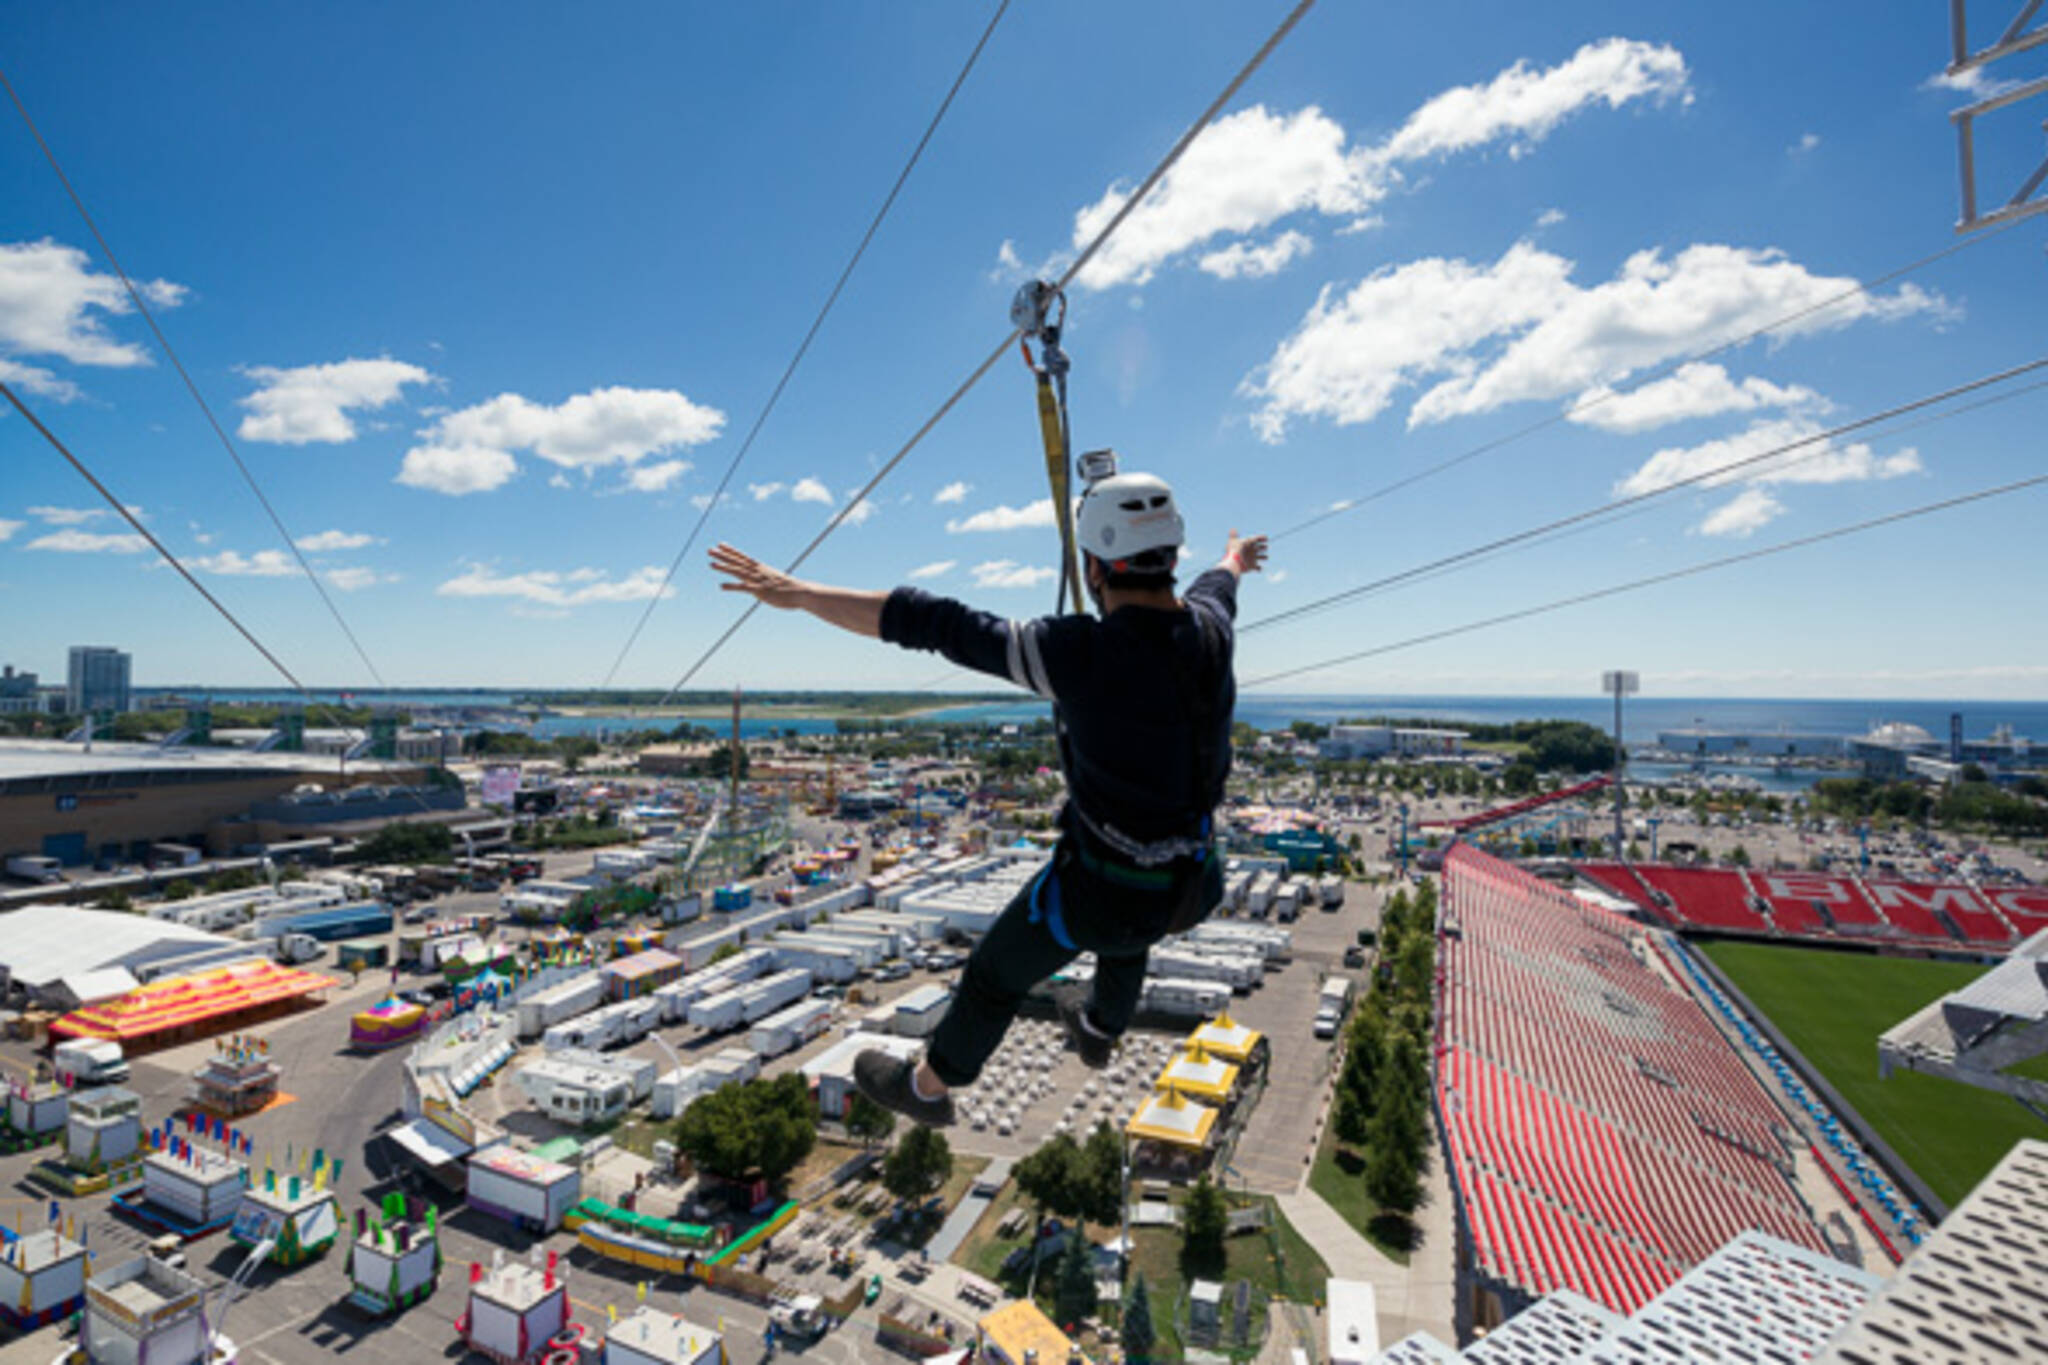 The CNE gets a 1000+ foot zip line for 2013